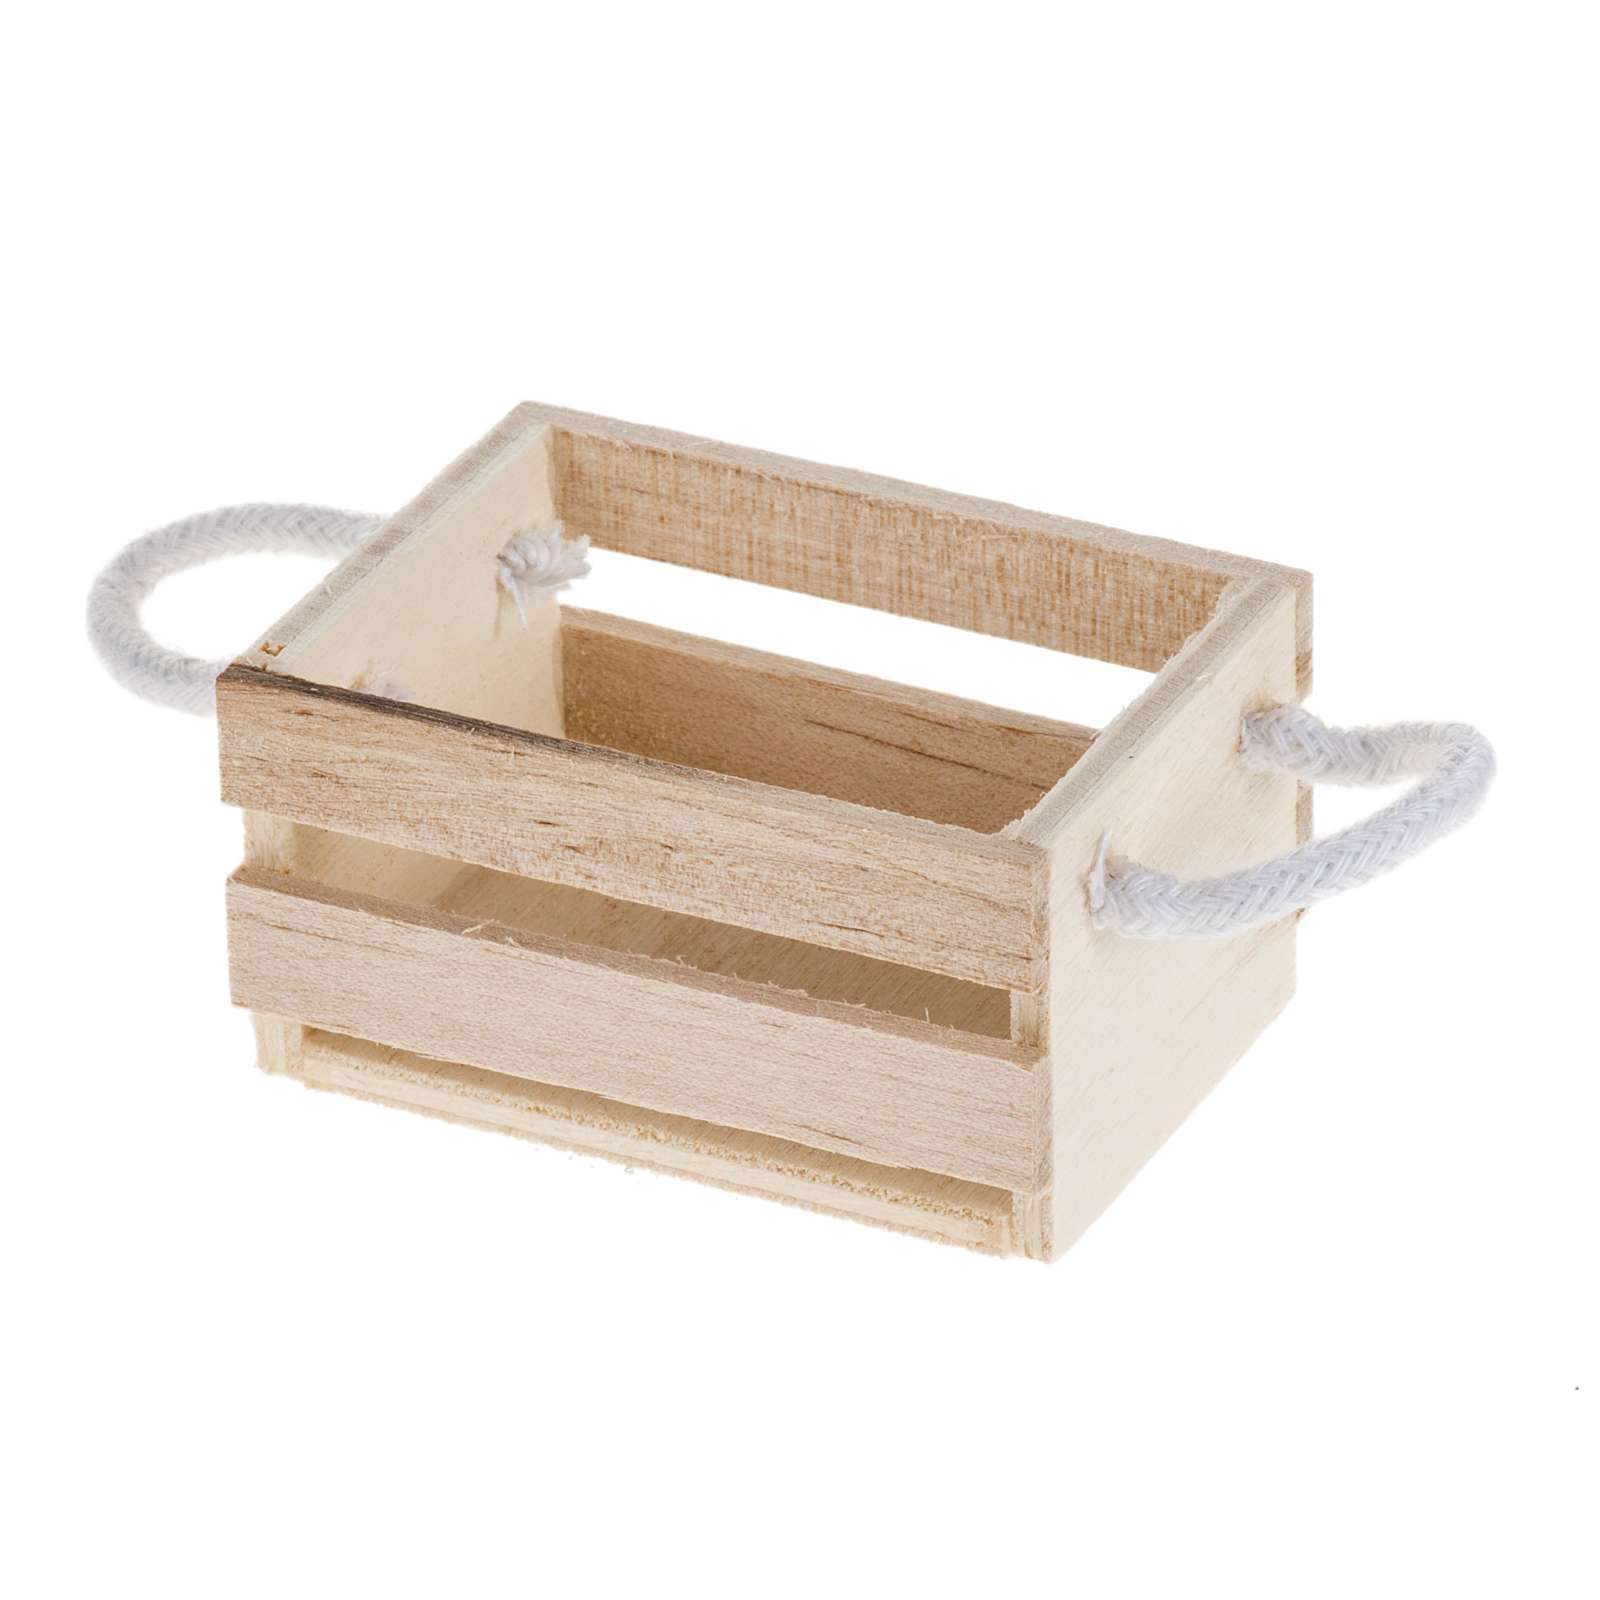 Nativity accessory, wooden box with rope handles 4